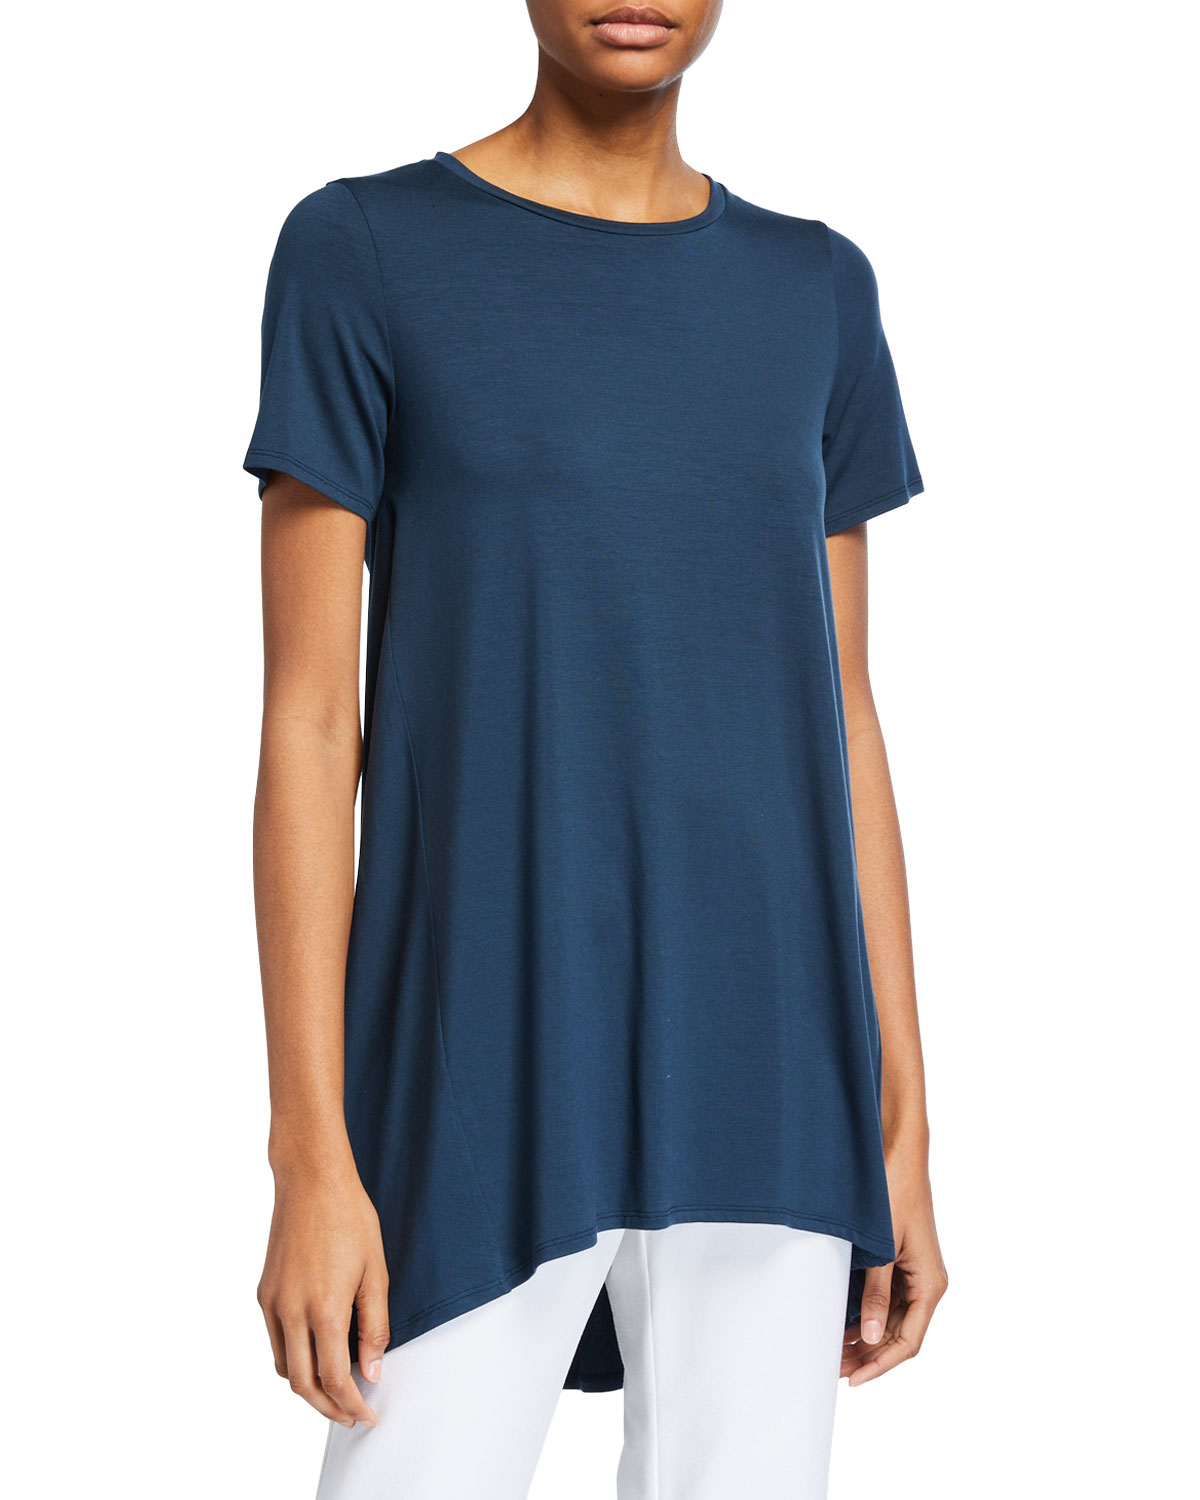 Eileen Fisher Downs PETITE CREWNECK SHORT-SLEEVE A-LINE JERSEY TUNIC